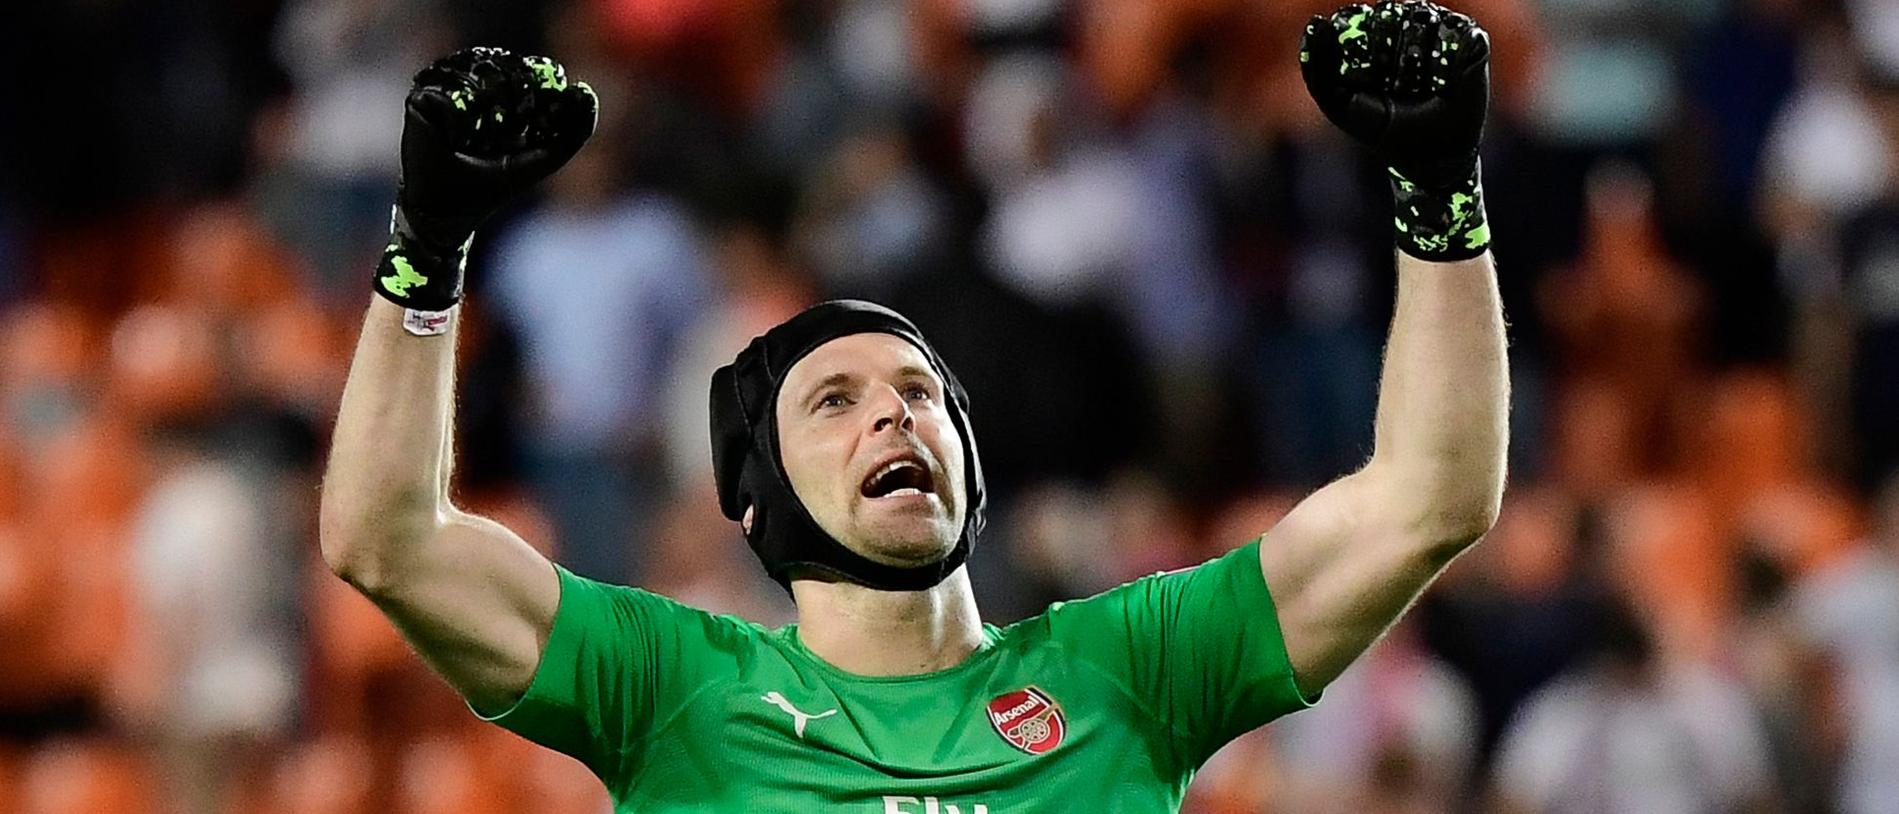 Arsenal's Czech goalkeeper Petr Cech celebrates at the end of the UEFA Europa League semi-final second leg football match between Valencia CF and Arsenal FC at the Mestalla stadium in Valencia on May 9, 2019. (Photo by JAVIER SORIANO / AFP)